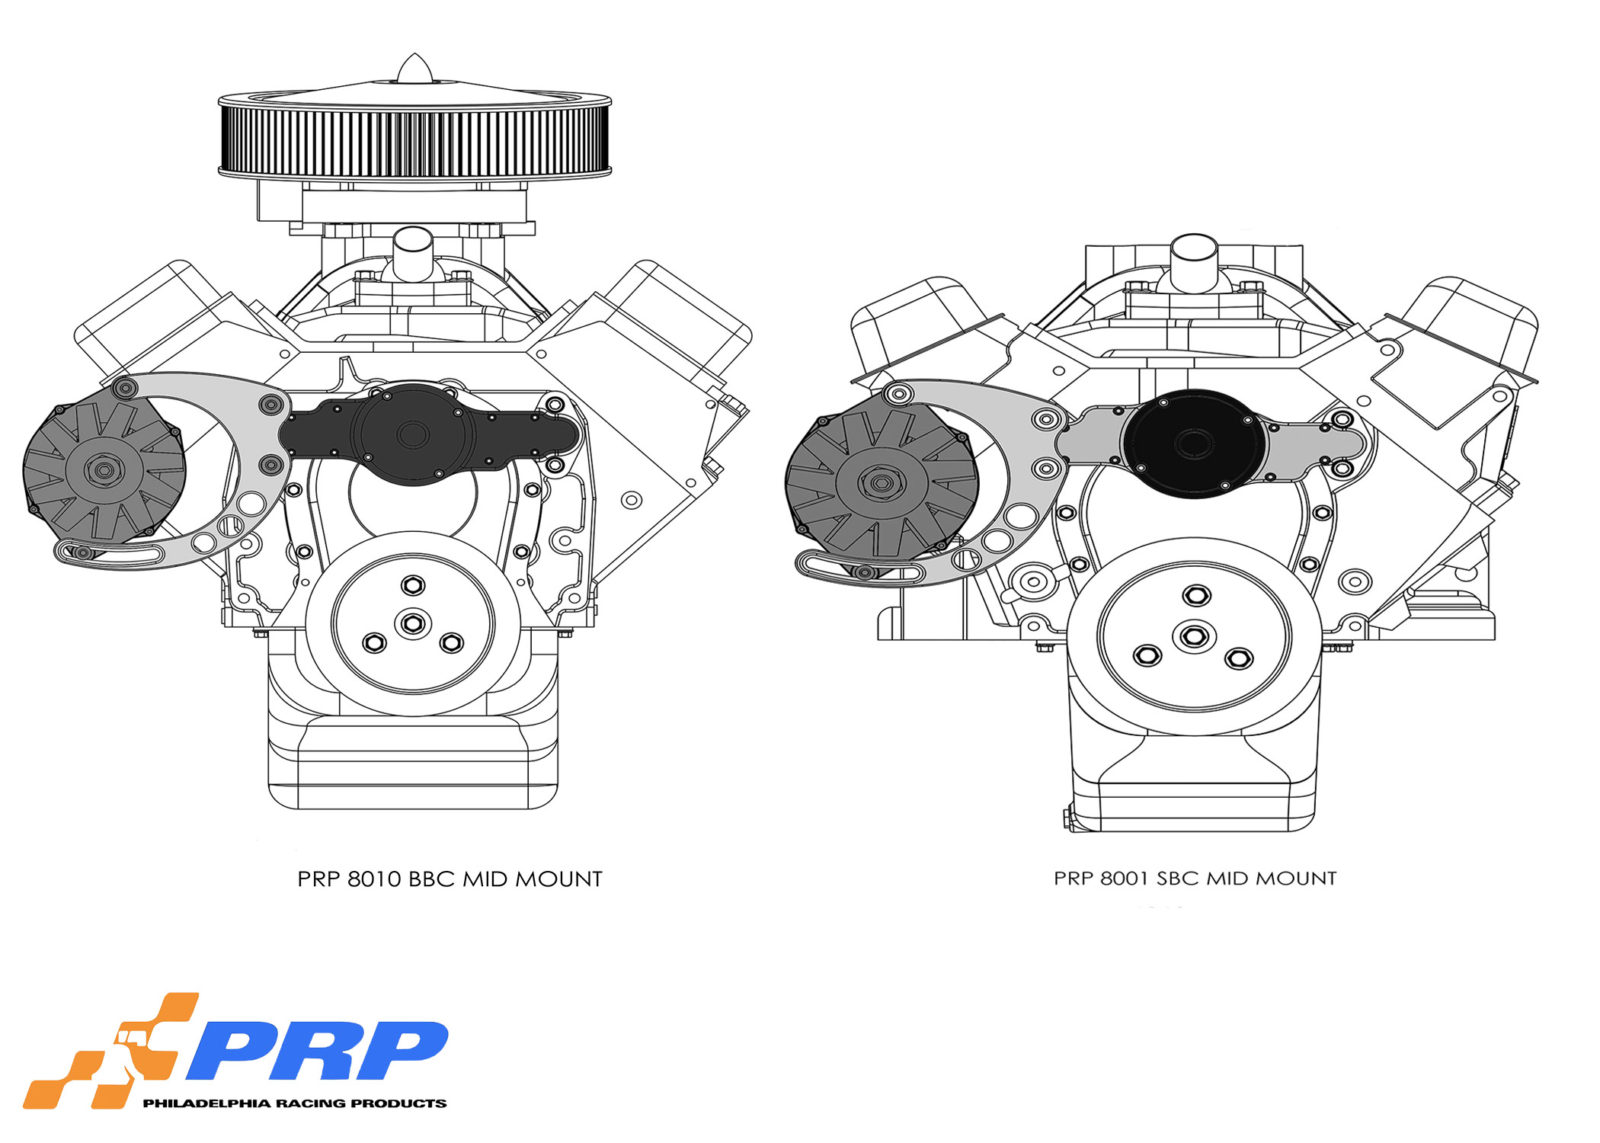 Schematics for Alternator Mounting Bracket for Chevy made by PRP Racing Products